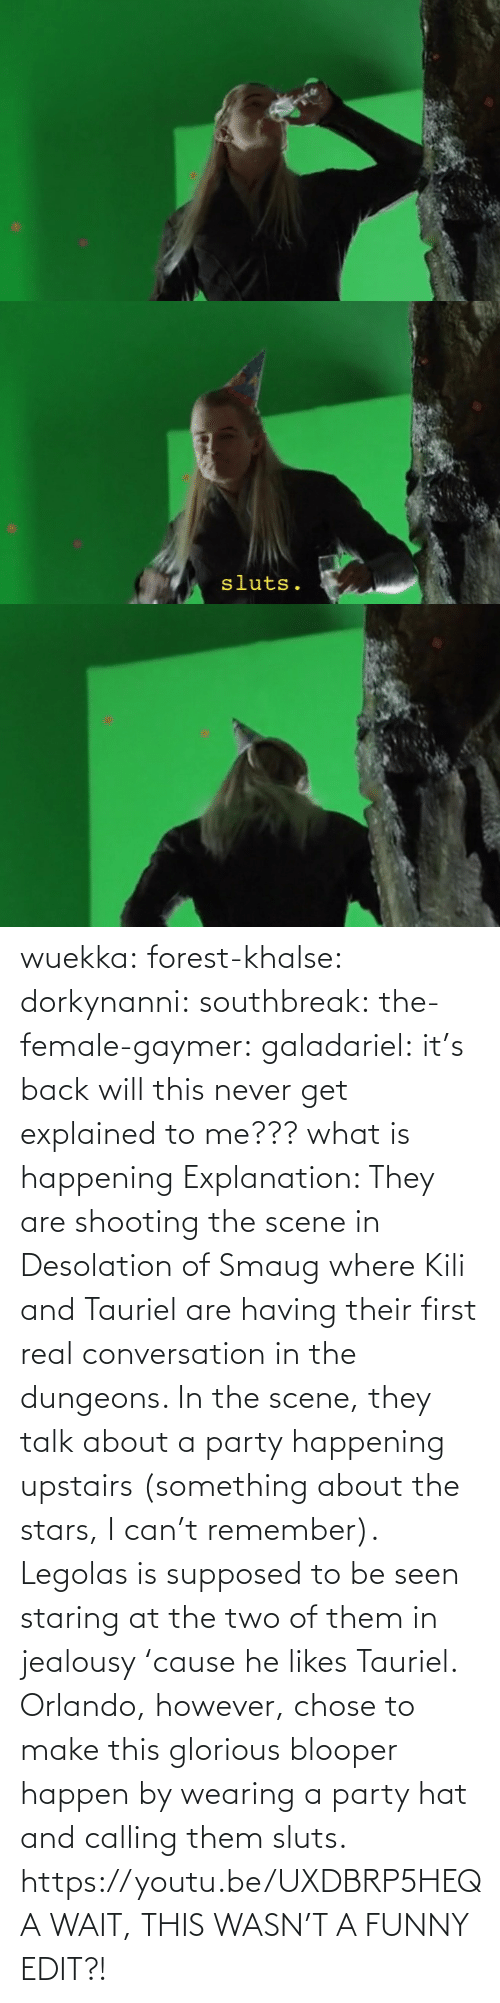 staring: wuekka: forest-khalse:   dorkynanni:  southbreak:   the-female-gaymer:   galadariel:  it's back   will this never get explained to me???    what is happening    Explanation:  They are shooting the scene in Desolation of Smaug where Kili and Tauriel are having their first real conversation in the dungeons.  In the scene, they talk about a party happening upstairs (something about the stars, I can't remember). Legolas is supposed to be seen staring at the two of them in jealousy 'cause he likes Tauriel.  Orlando, however, chose to make this glorious blooper happen by wearing a party hat and calling them sluts.    https://youtu.be/UXDBRP5HEQA    WAIT, THIS WASN'T A FUNNY EDIT?!